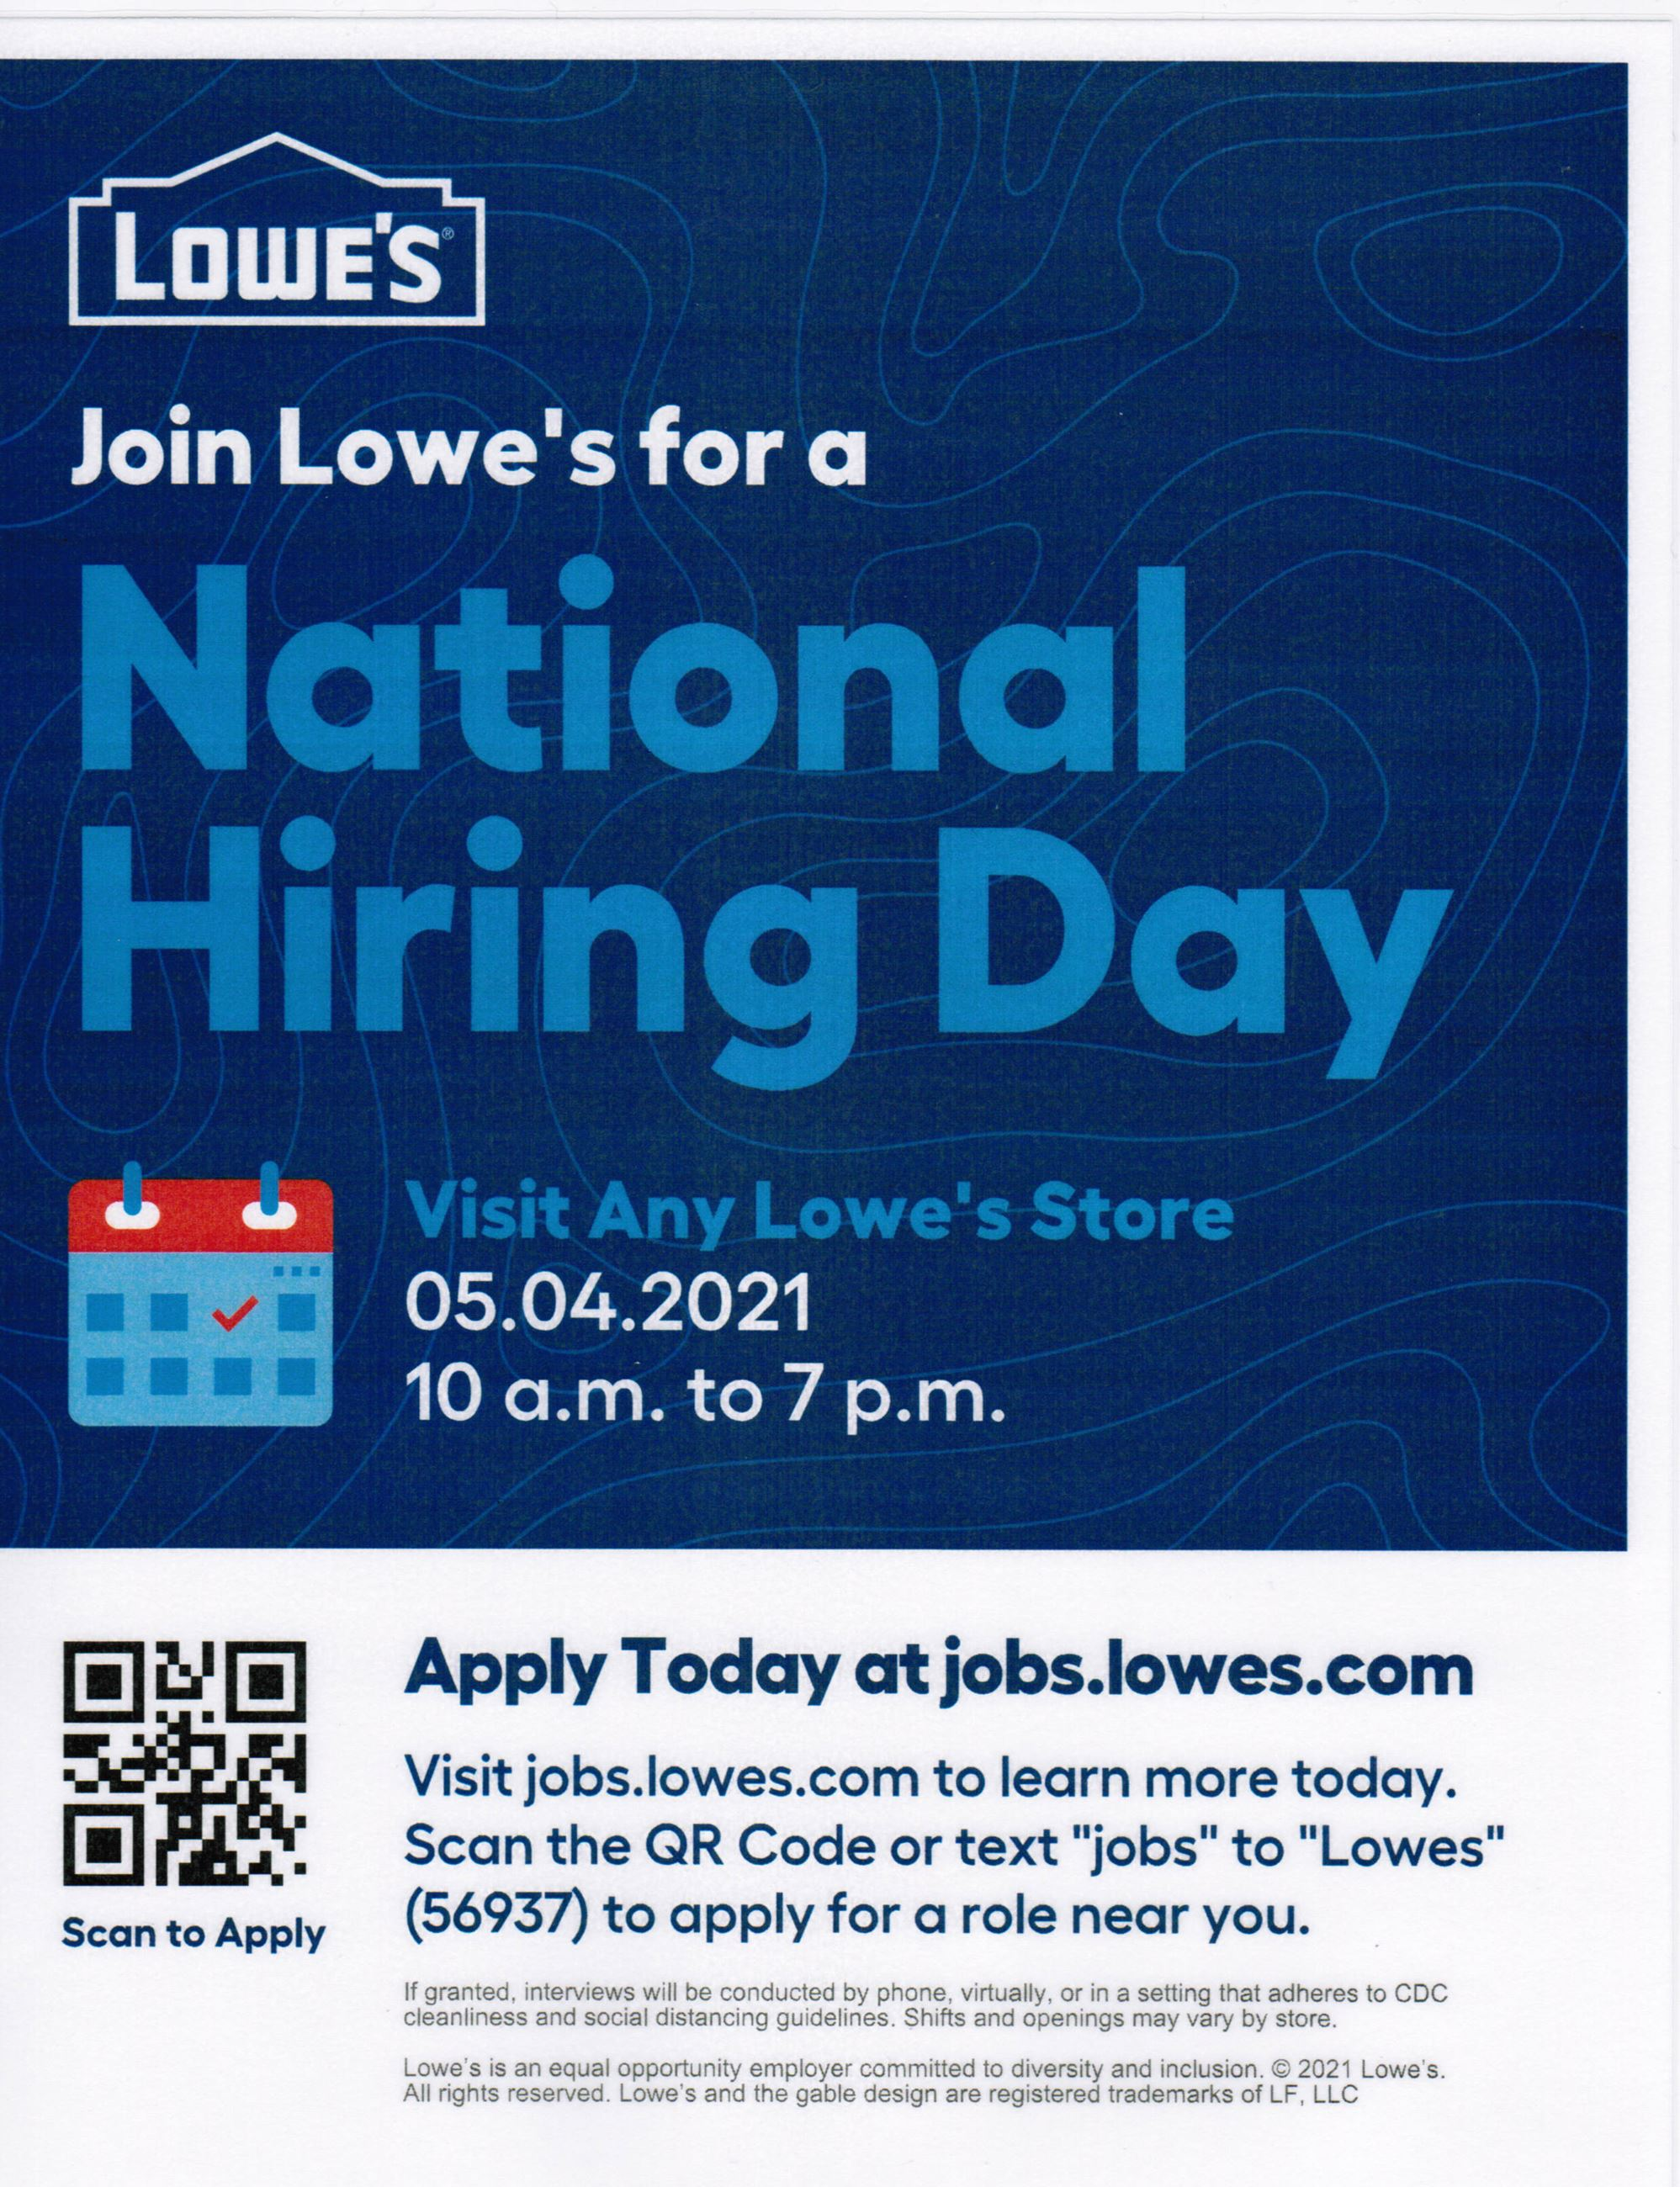 Lowes Hiring Day